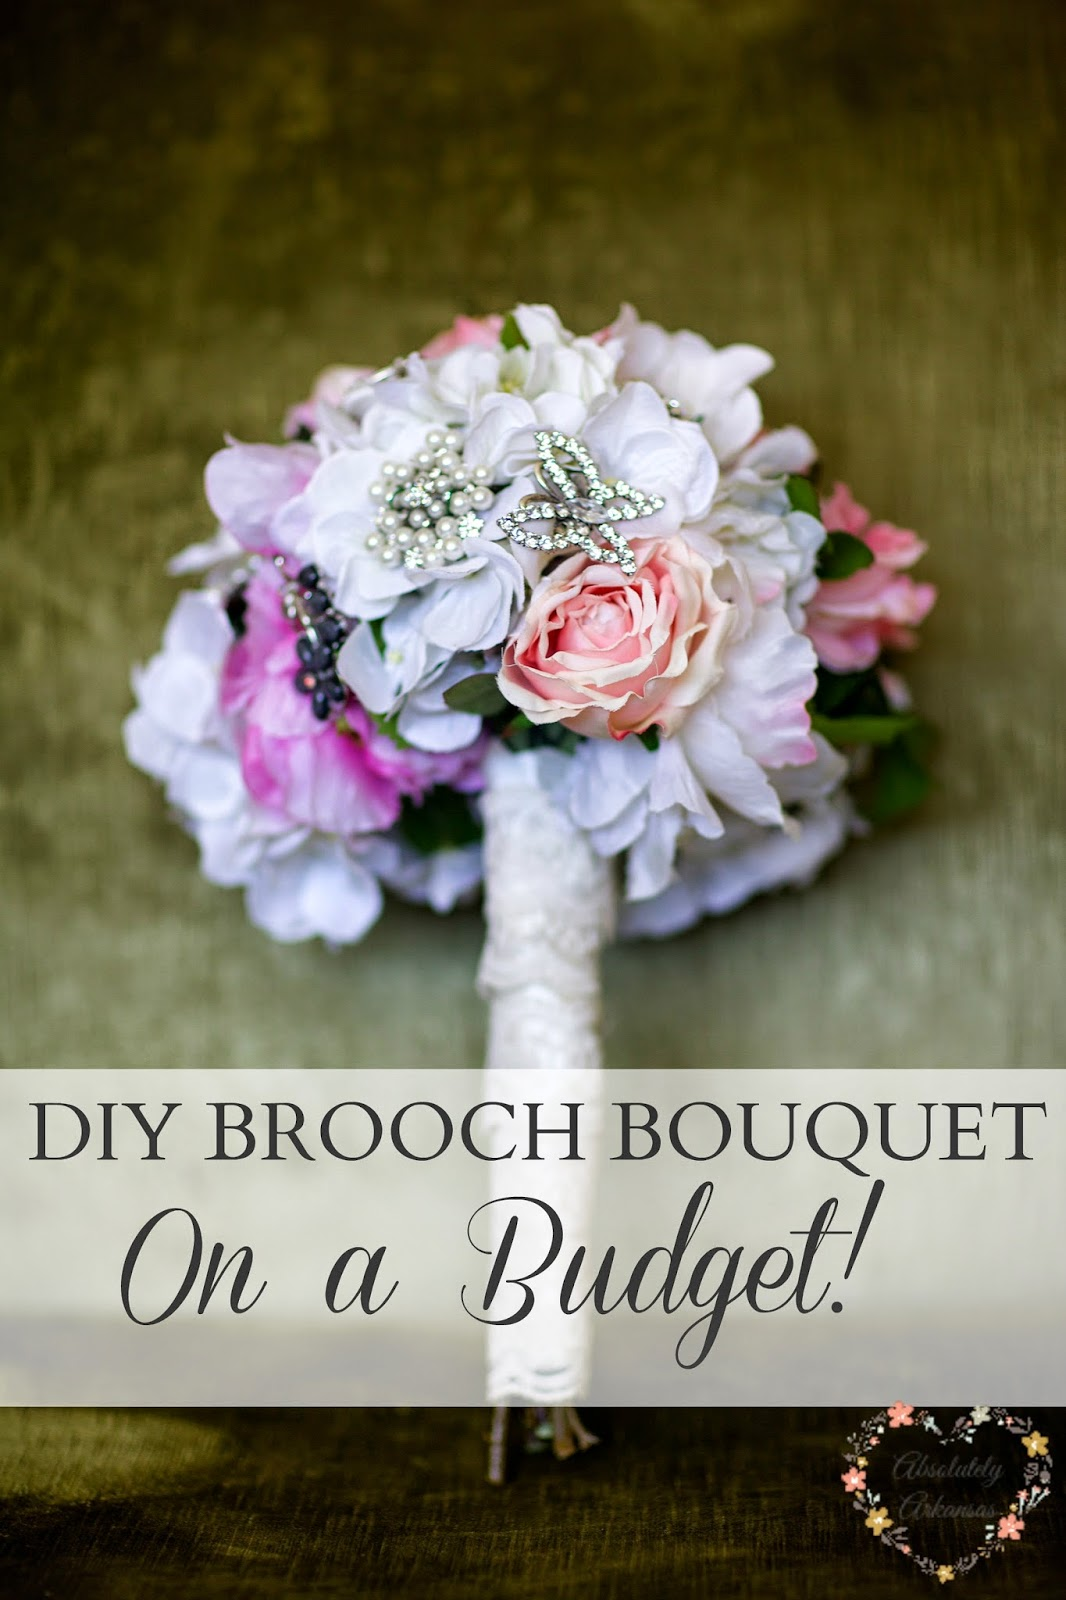 Rose Co Blog My Diy Brooch Bouquet On A Budget